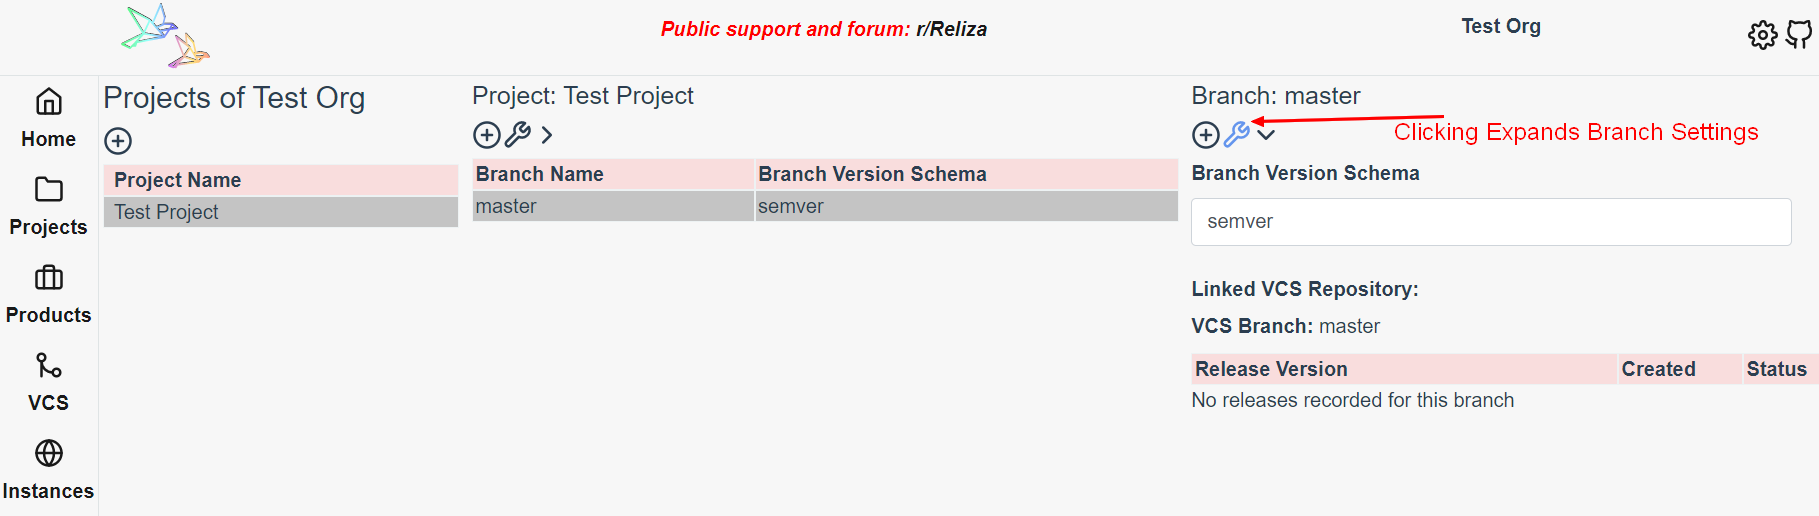 Branch View in Reliza Hub